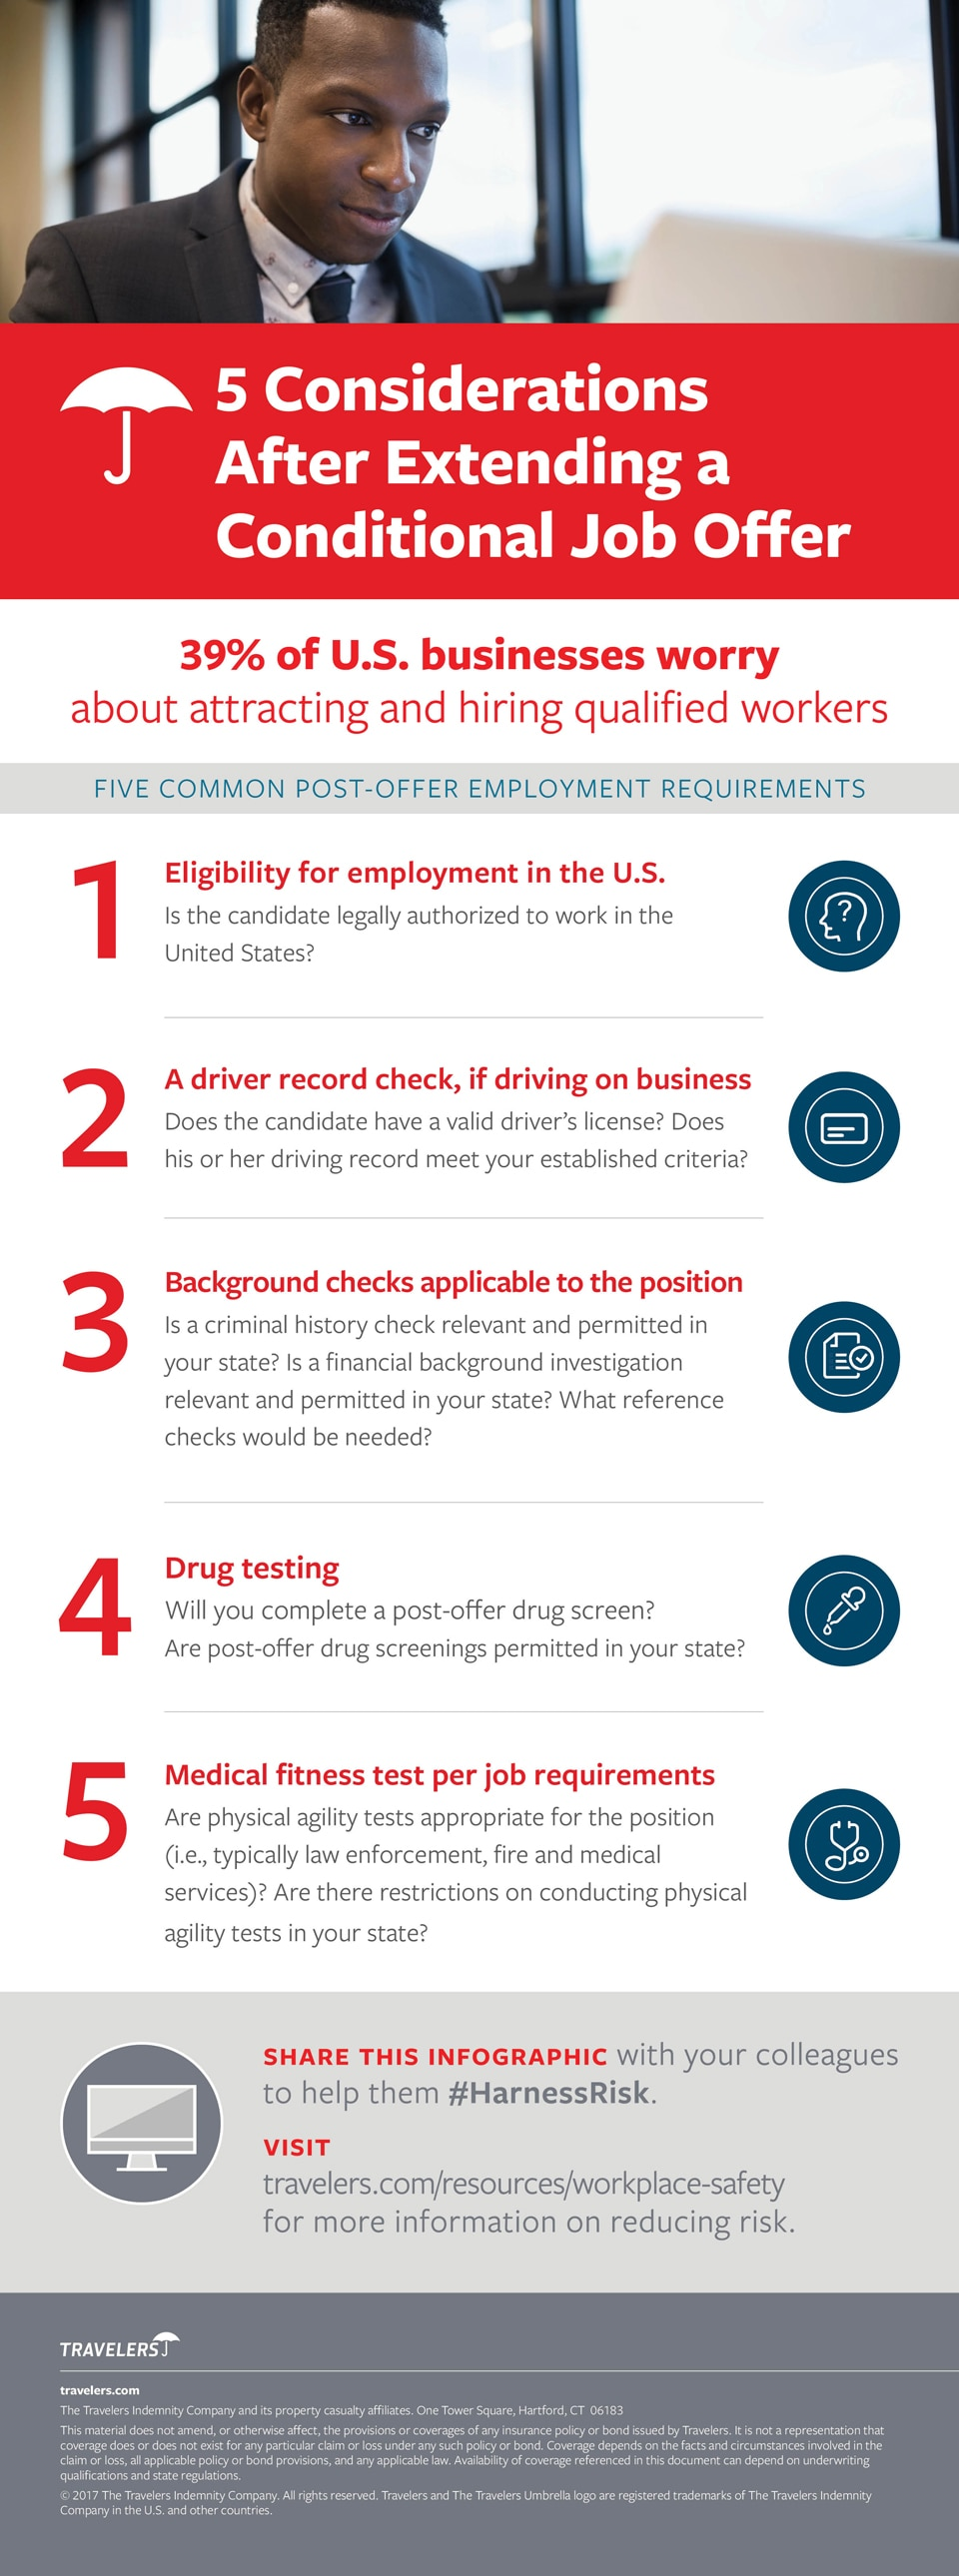 5 Considerations After Extending a Conditional Job Offer [Infographic]